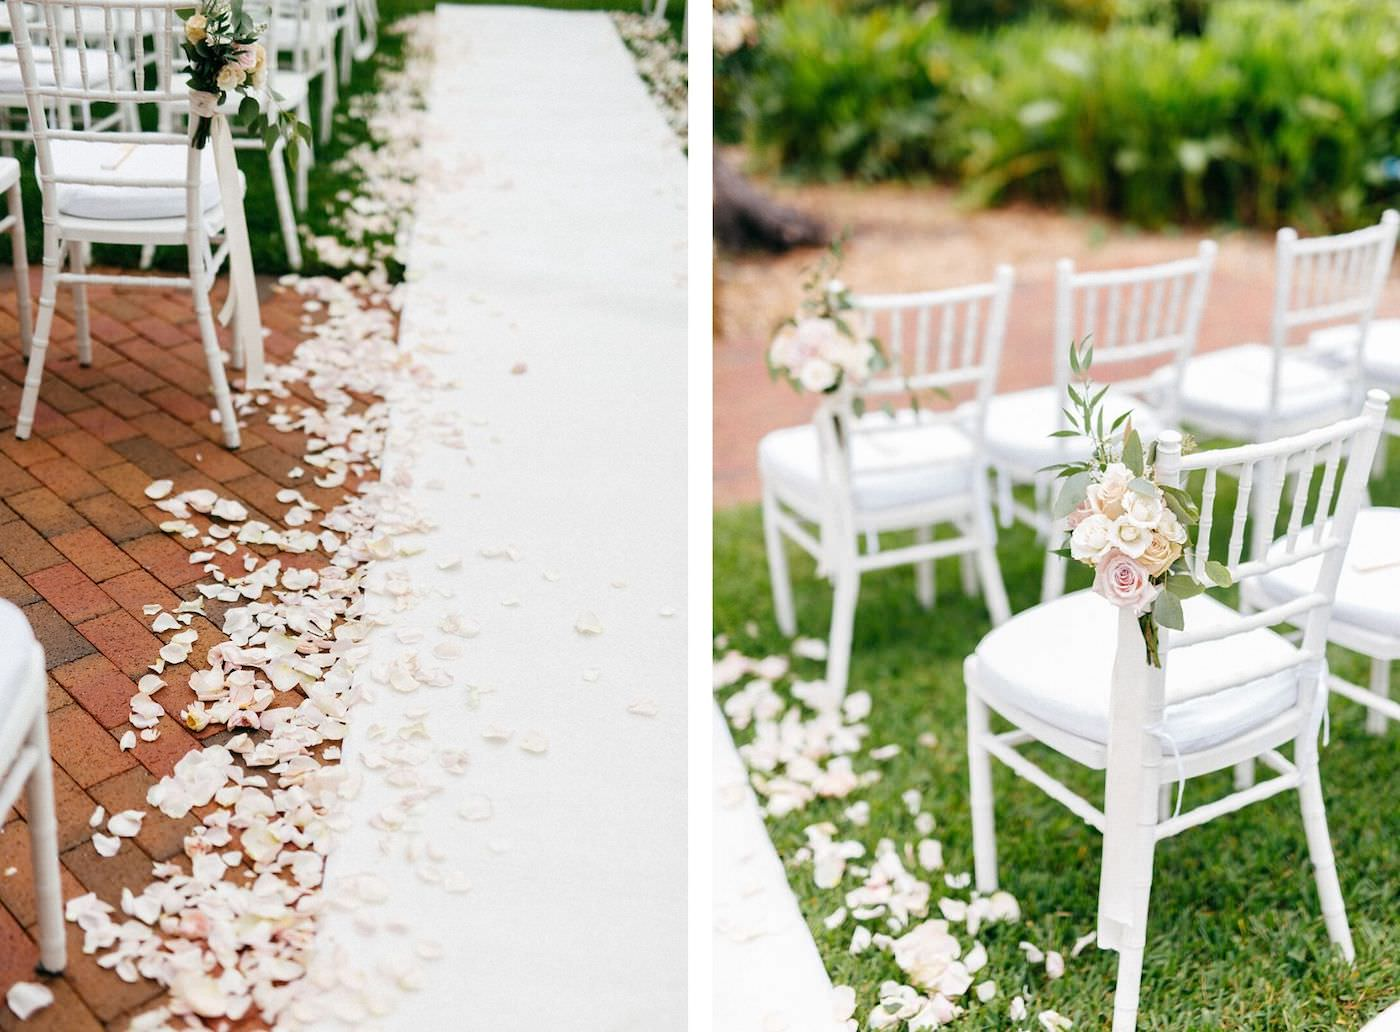 Romantic, Garden Inspired Wedding Ceremony, Large Floral Decor, With Gold Vases, Blush Pink Florals with Greenery, White Flower Petals Down Aisle with Runner, White Chiavari Chairs   Florida Wedding Planner NK Weddings   Marie Selby Botanical Gardens